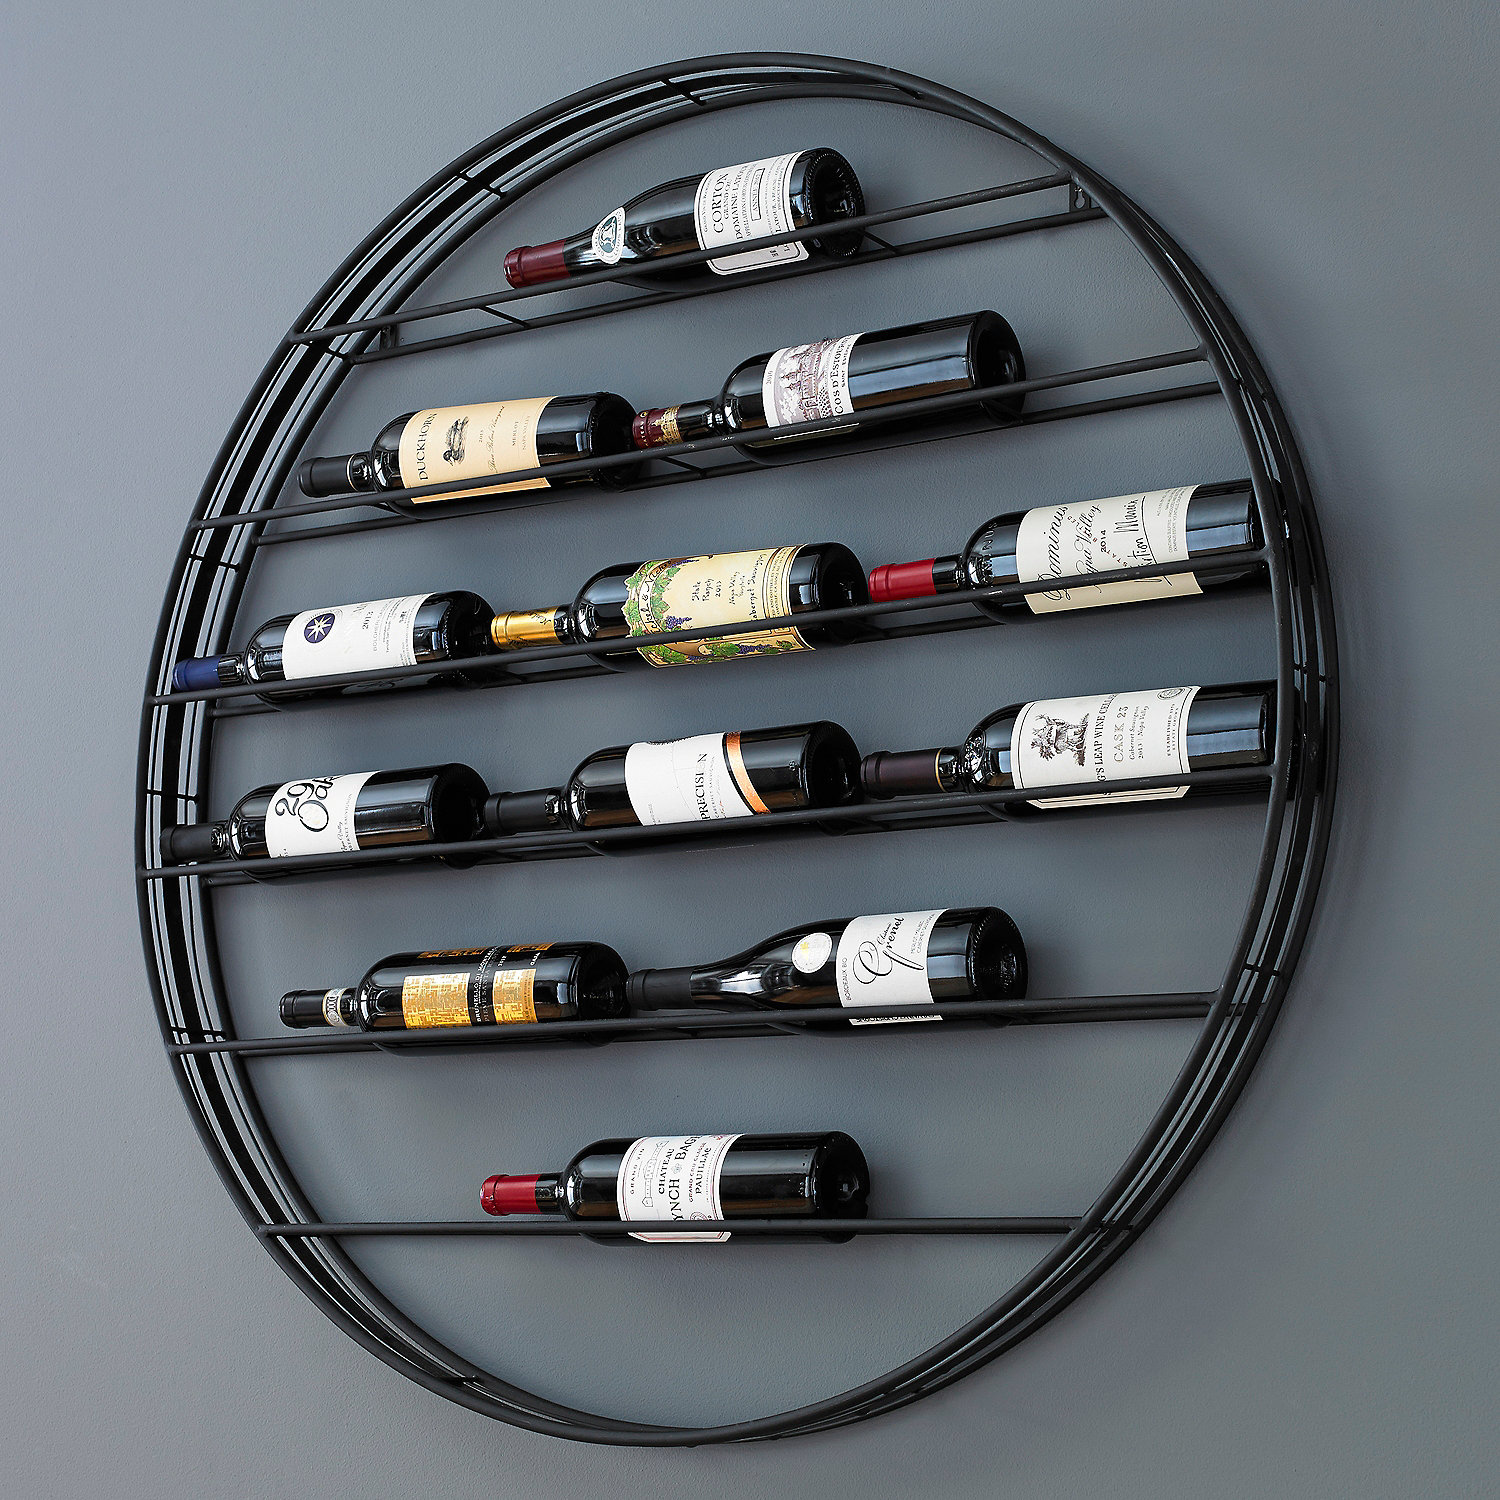 Wall wine racks Diy Wall Wine Rack Preparing Zoom Wine Enthusiast 12bottle Label View Wall Wine Rack Wine Enthusiast